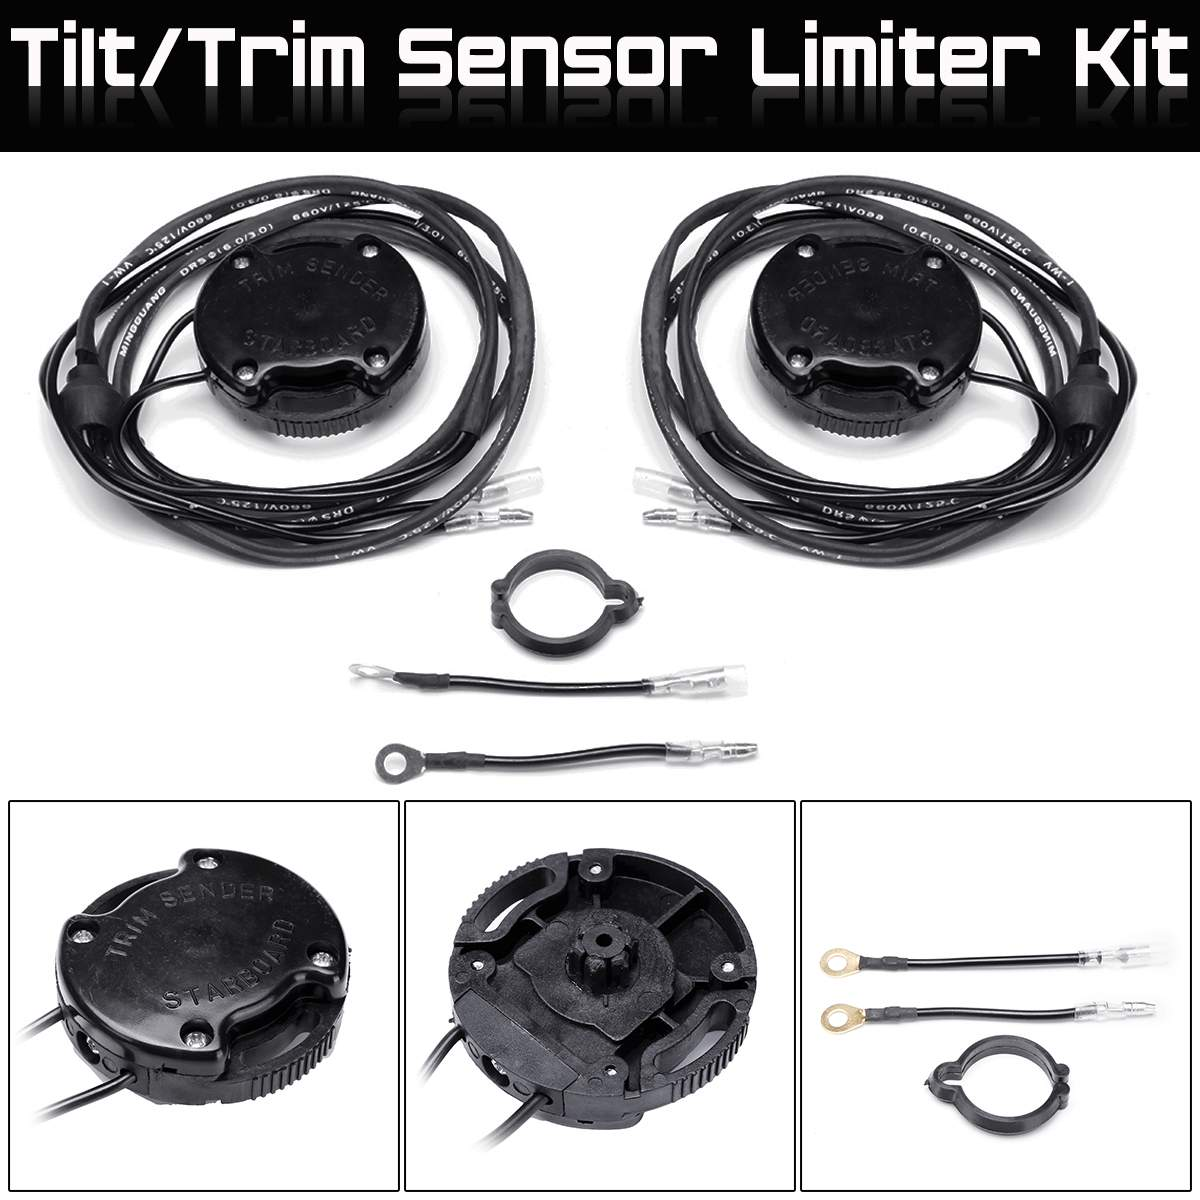 62 Mm Trim Tilt Limit Sender Switch For Mercruiser MC R MR 805320A03 805320A1Trim Sender Limit Kit For Alpha Bravo